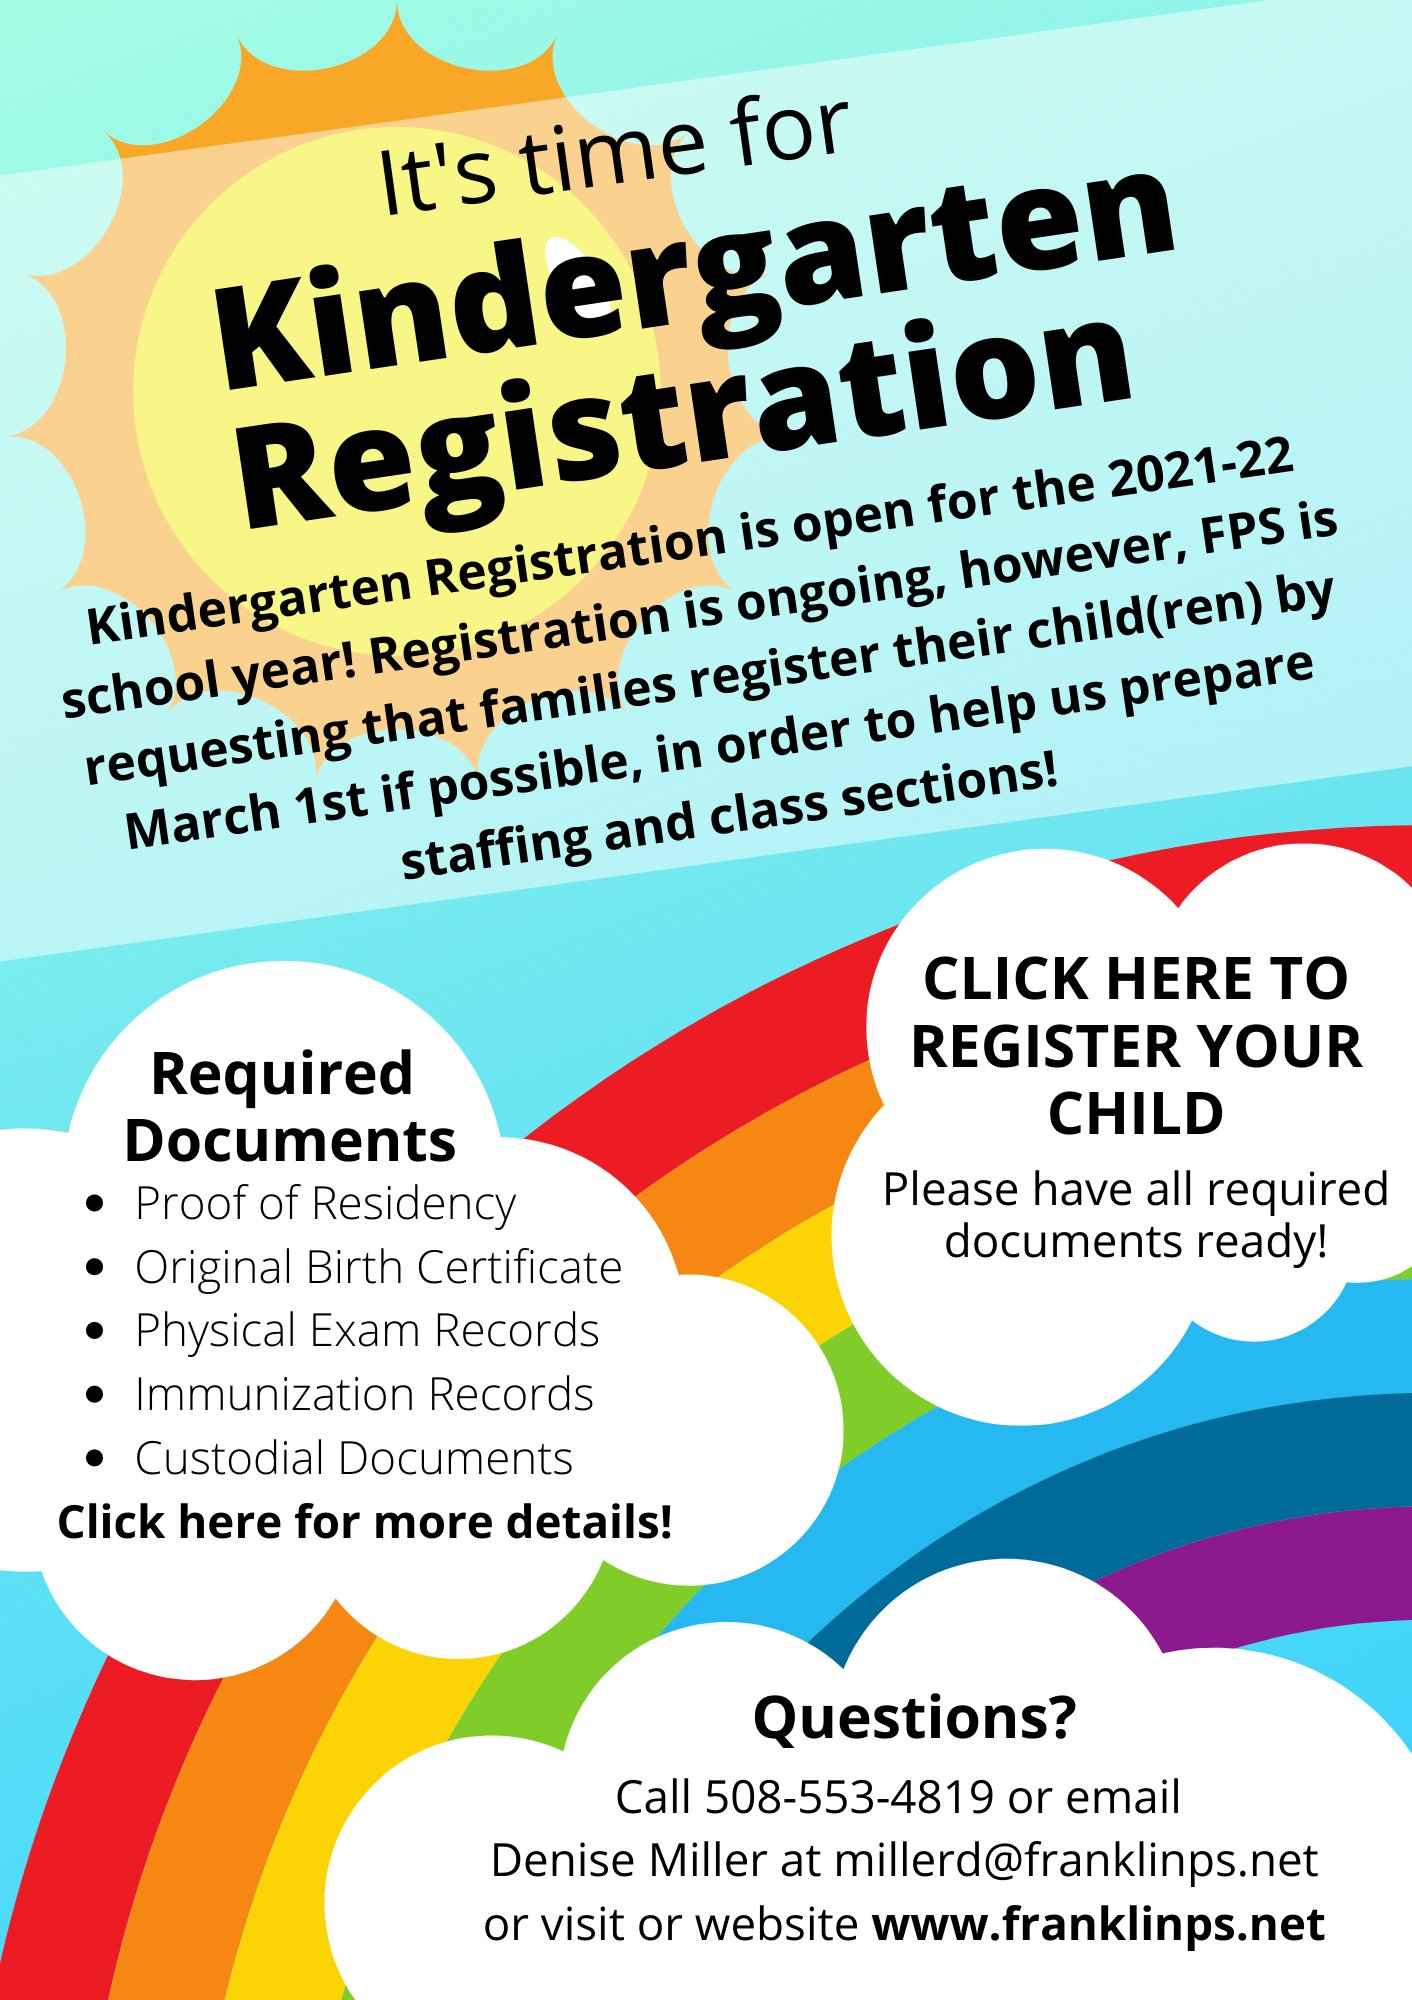 Franklin Public Schools, MA: Kindergarten registration is open